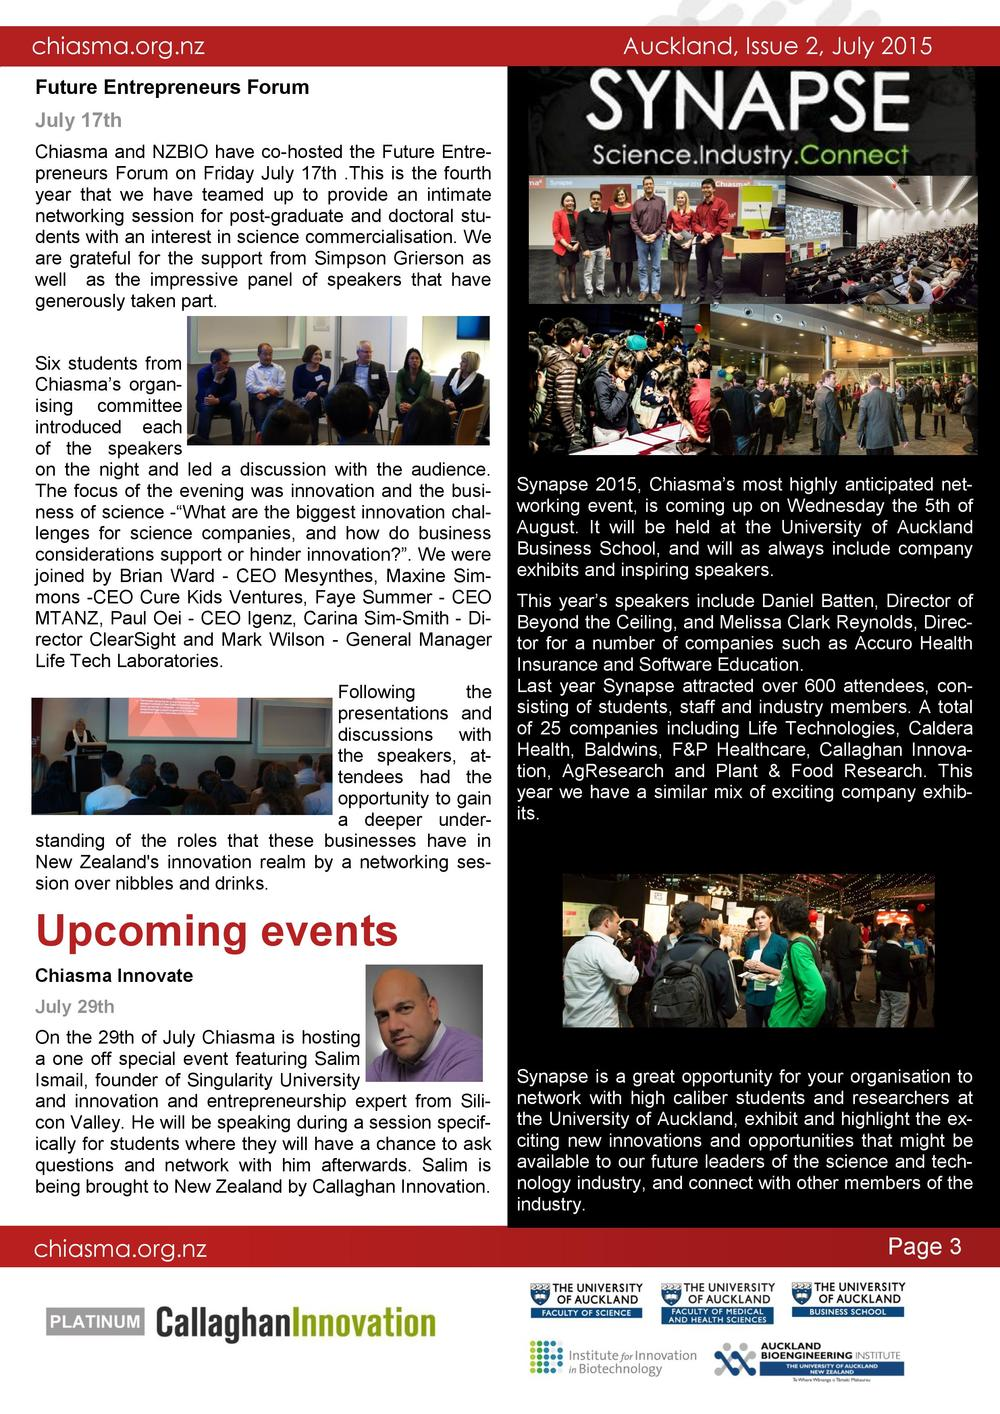 Industry_Newsletter_2_2015_Draft_4-page-003.jpg